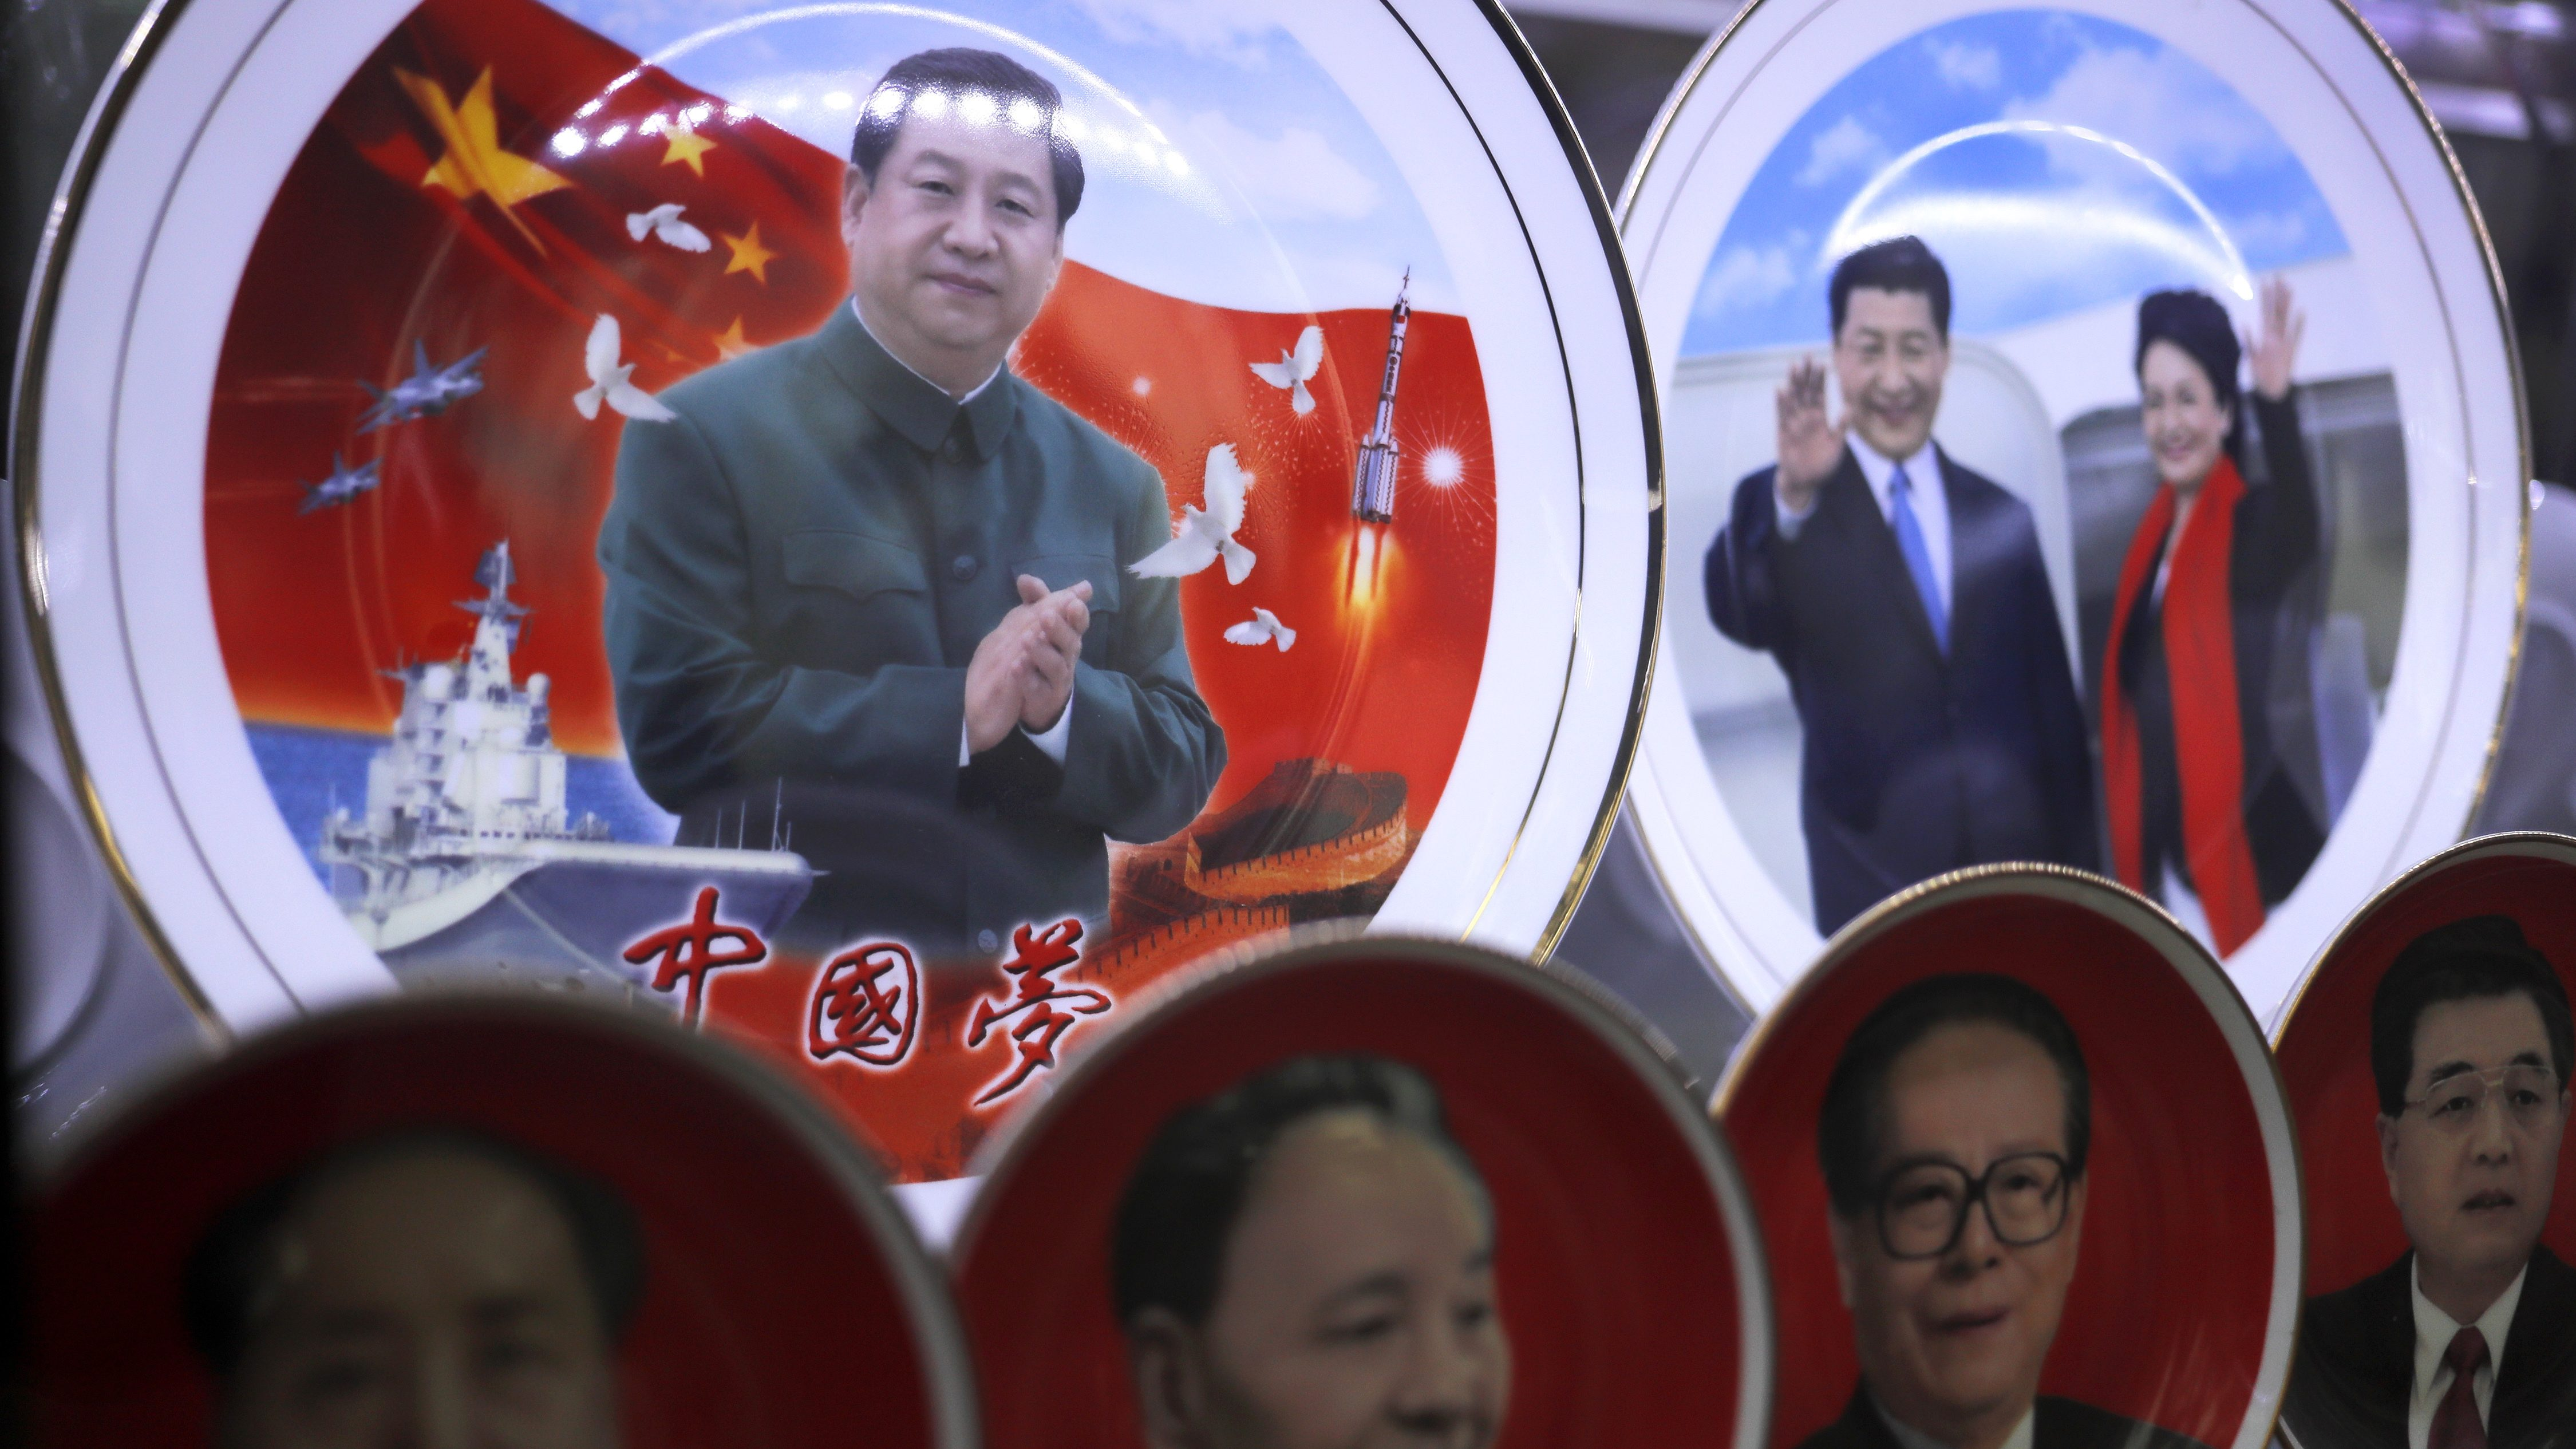 Porcelain plates baring images of Chinese President Xi Jinping and his wife Peng Liyuan are displayed with previous Chinese leaders below, from left, Mao Zedong, Deng Xiaoping, Jiang Zemin and Hu Jintao, at a souvenir shop near Tiananmen Square in Beijing, Thursday, Oct. 27, 2016. China's ruling Communist Party concludes a key meeting this week aimed at shoring up internal discipline and asserting General Secretary Xi's authority. The gathering is also expected to lay the groundwork for next year's national congress that will decide major leadership positions and lay out the agenda for Xi's next five-year term.